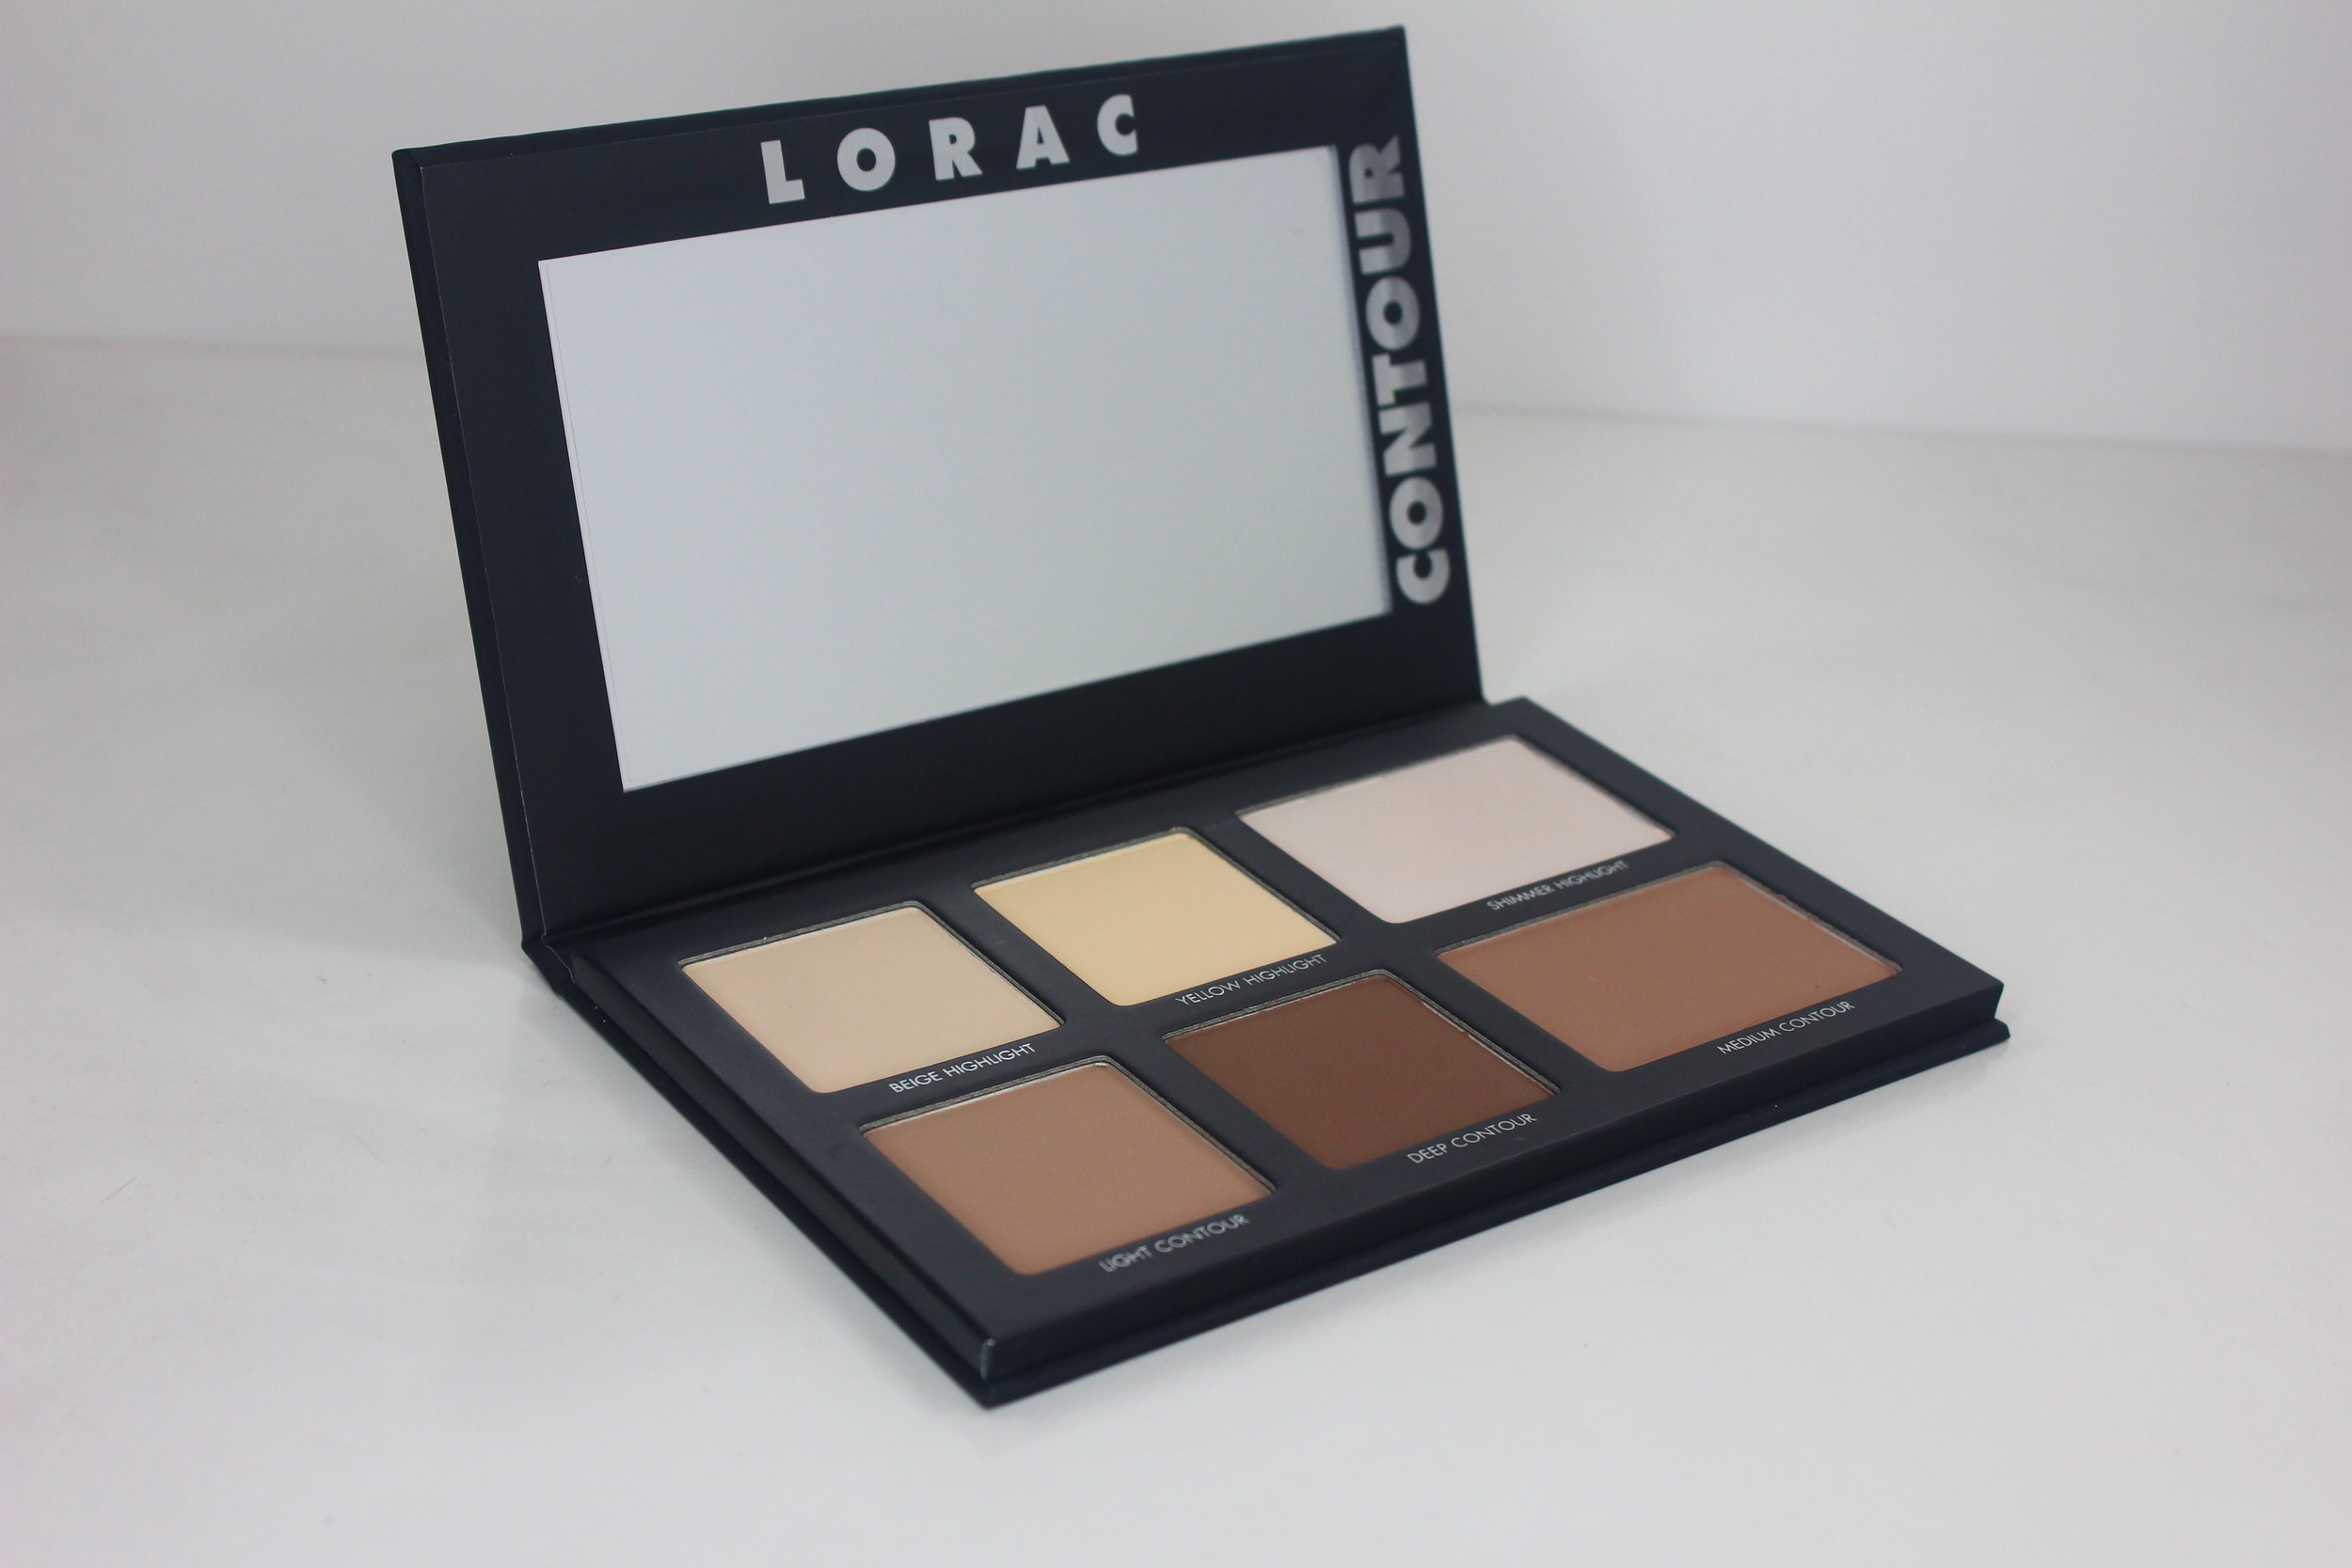 Lorac Pro Contour Palette Review & Swatches 1